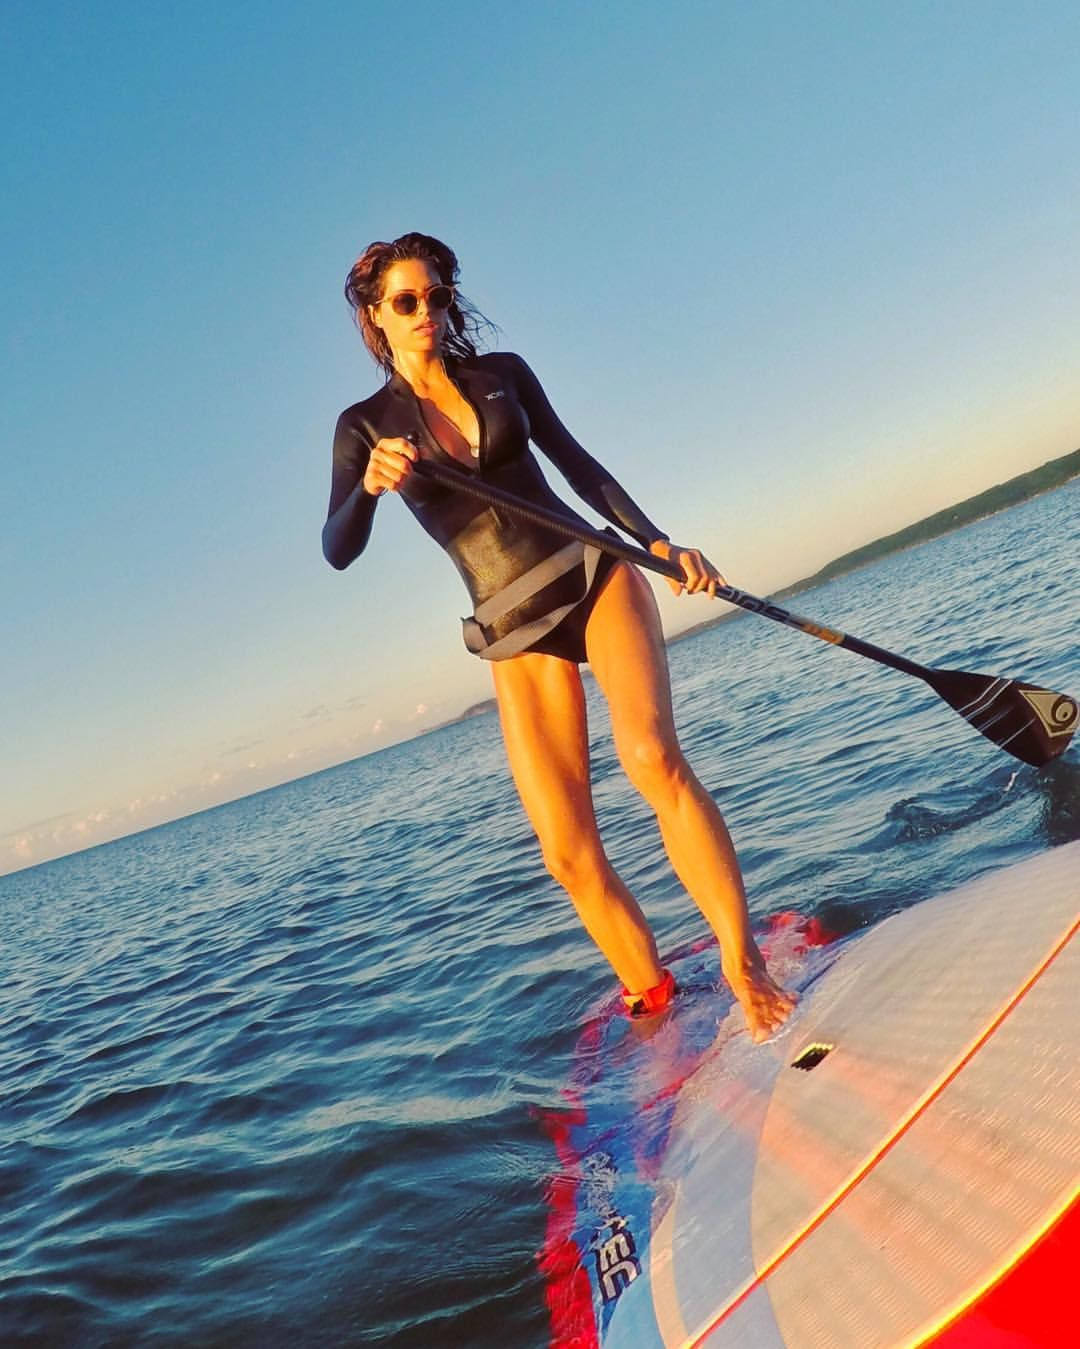 Making A Turn On A Stand Up Paddle Board Standup Paddle Paddle Boarding Paddle Surfing